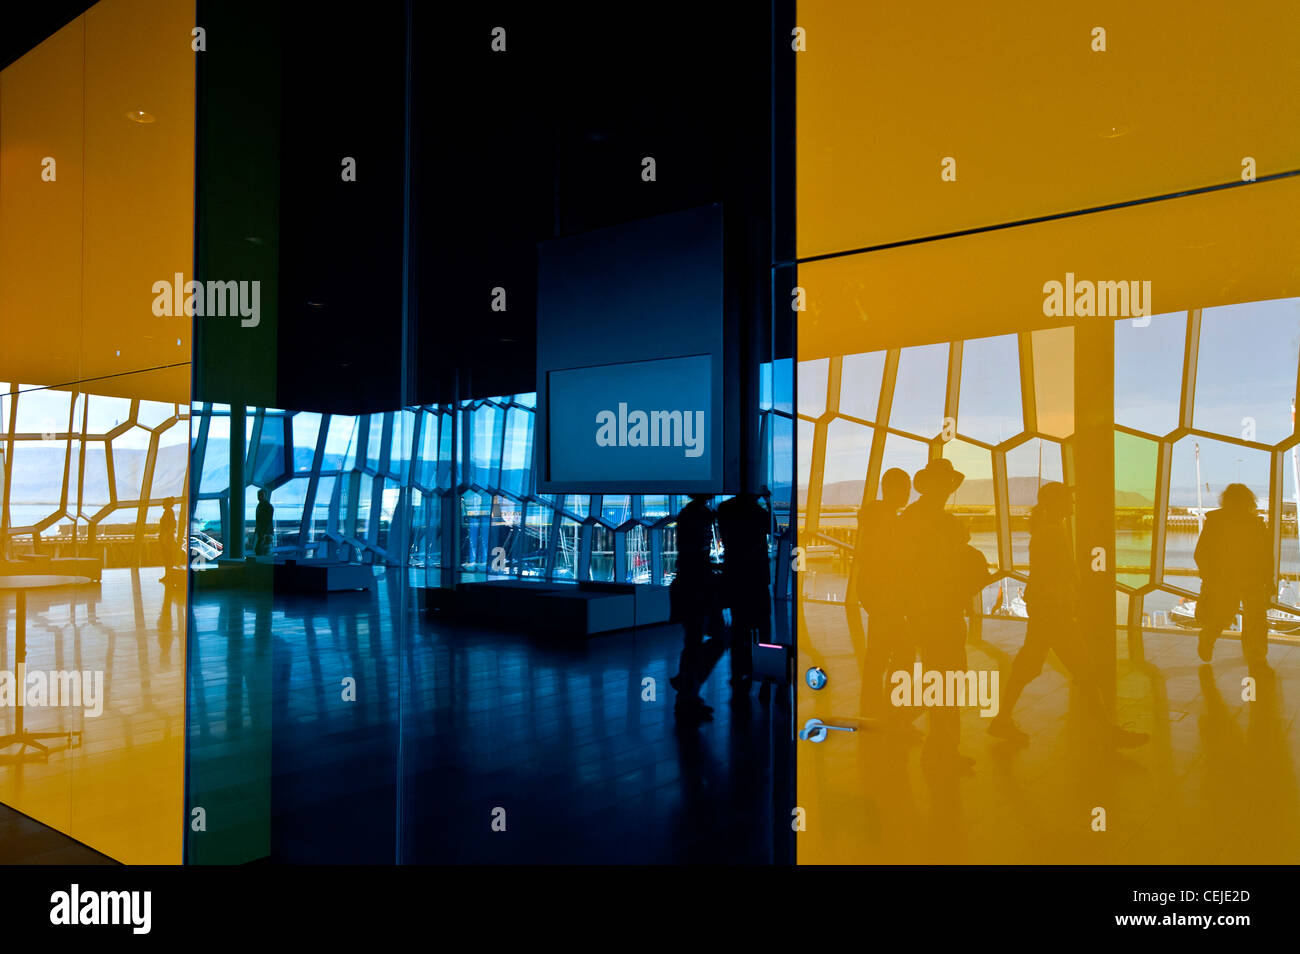 Reflection of group of people in colorful wall touring Harpa 'The Harp' concert hall in Reykjavik, Iceland. - Stock Image